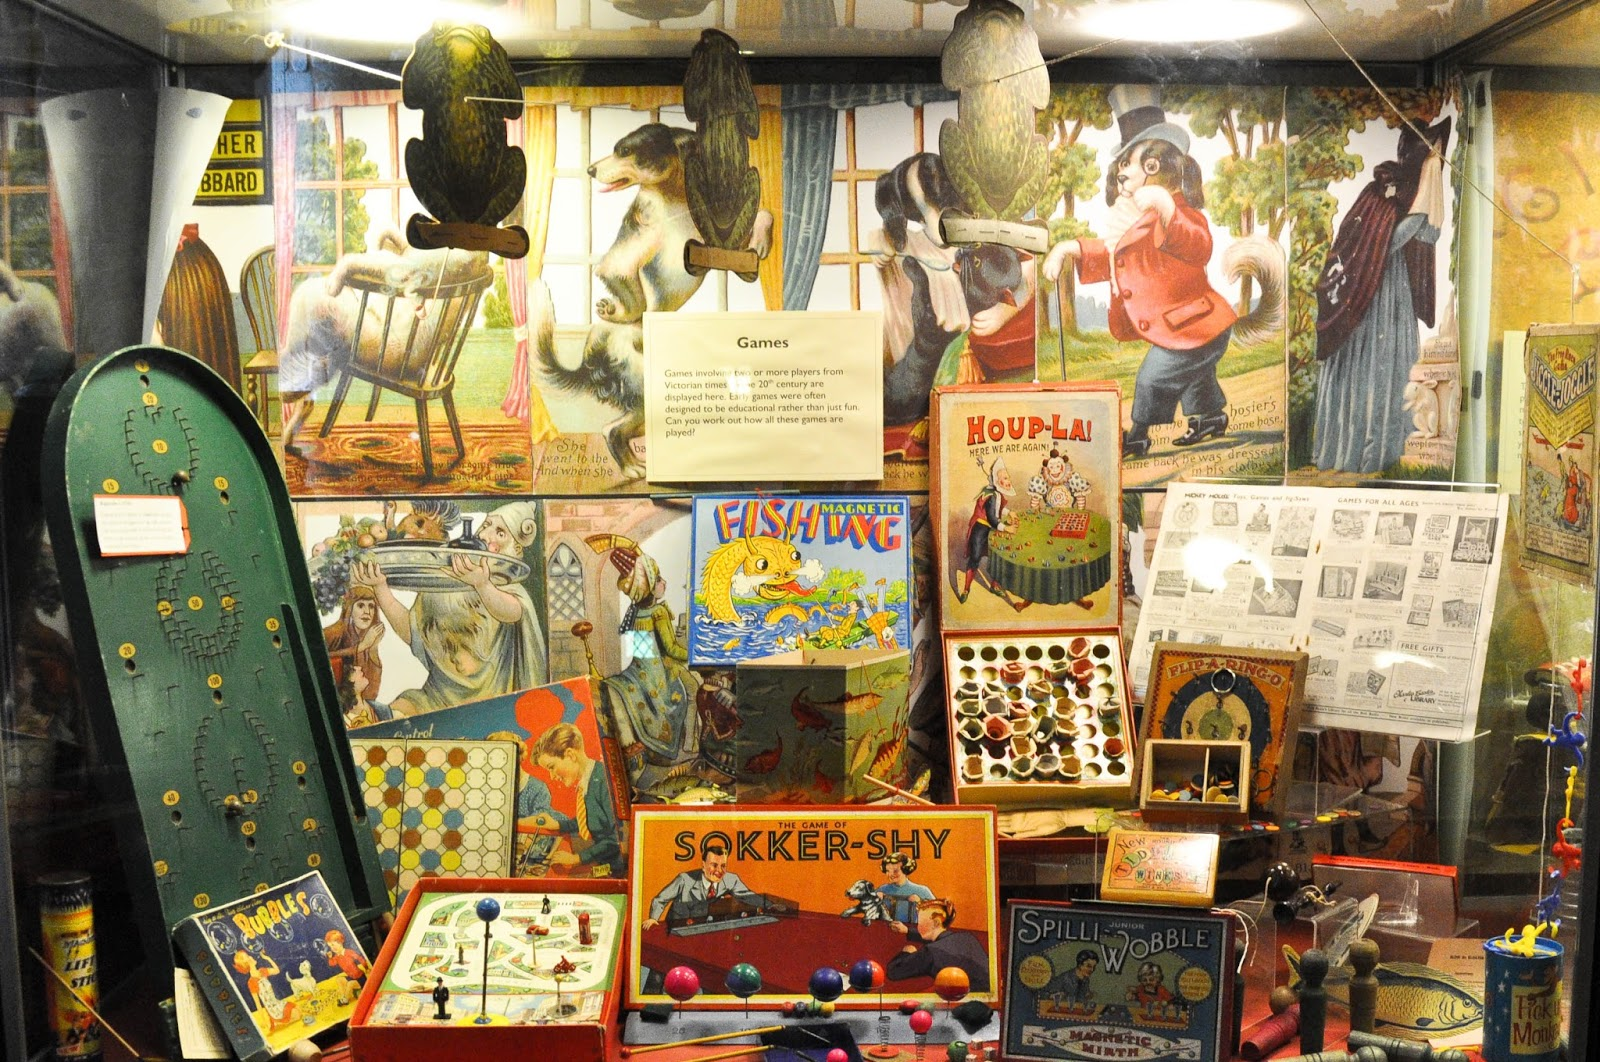 Board games in the museum, Carisbrook Castle, Isle of Wight, UK